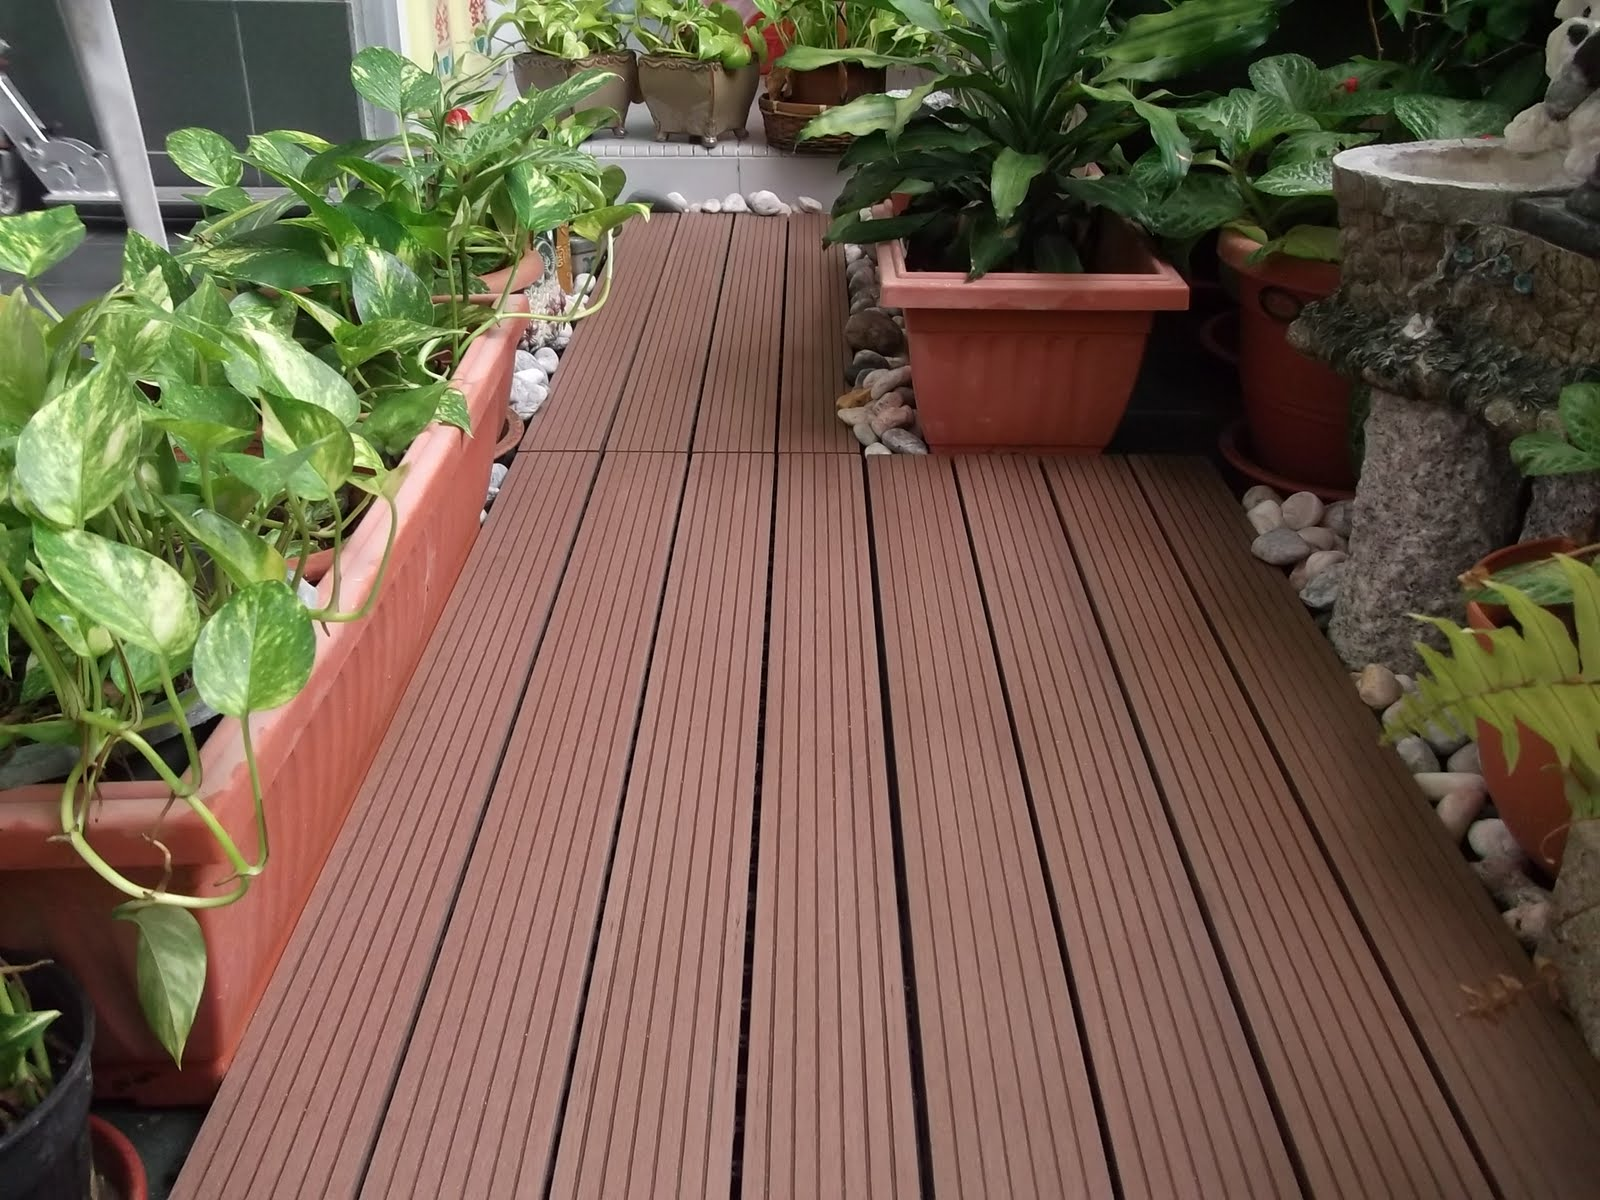 Beautiful Singapore Planter Decks, Patio Decks, Balcony Decks, DIY Decks, Garden  Decks Call 70wood Decking System